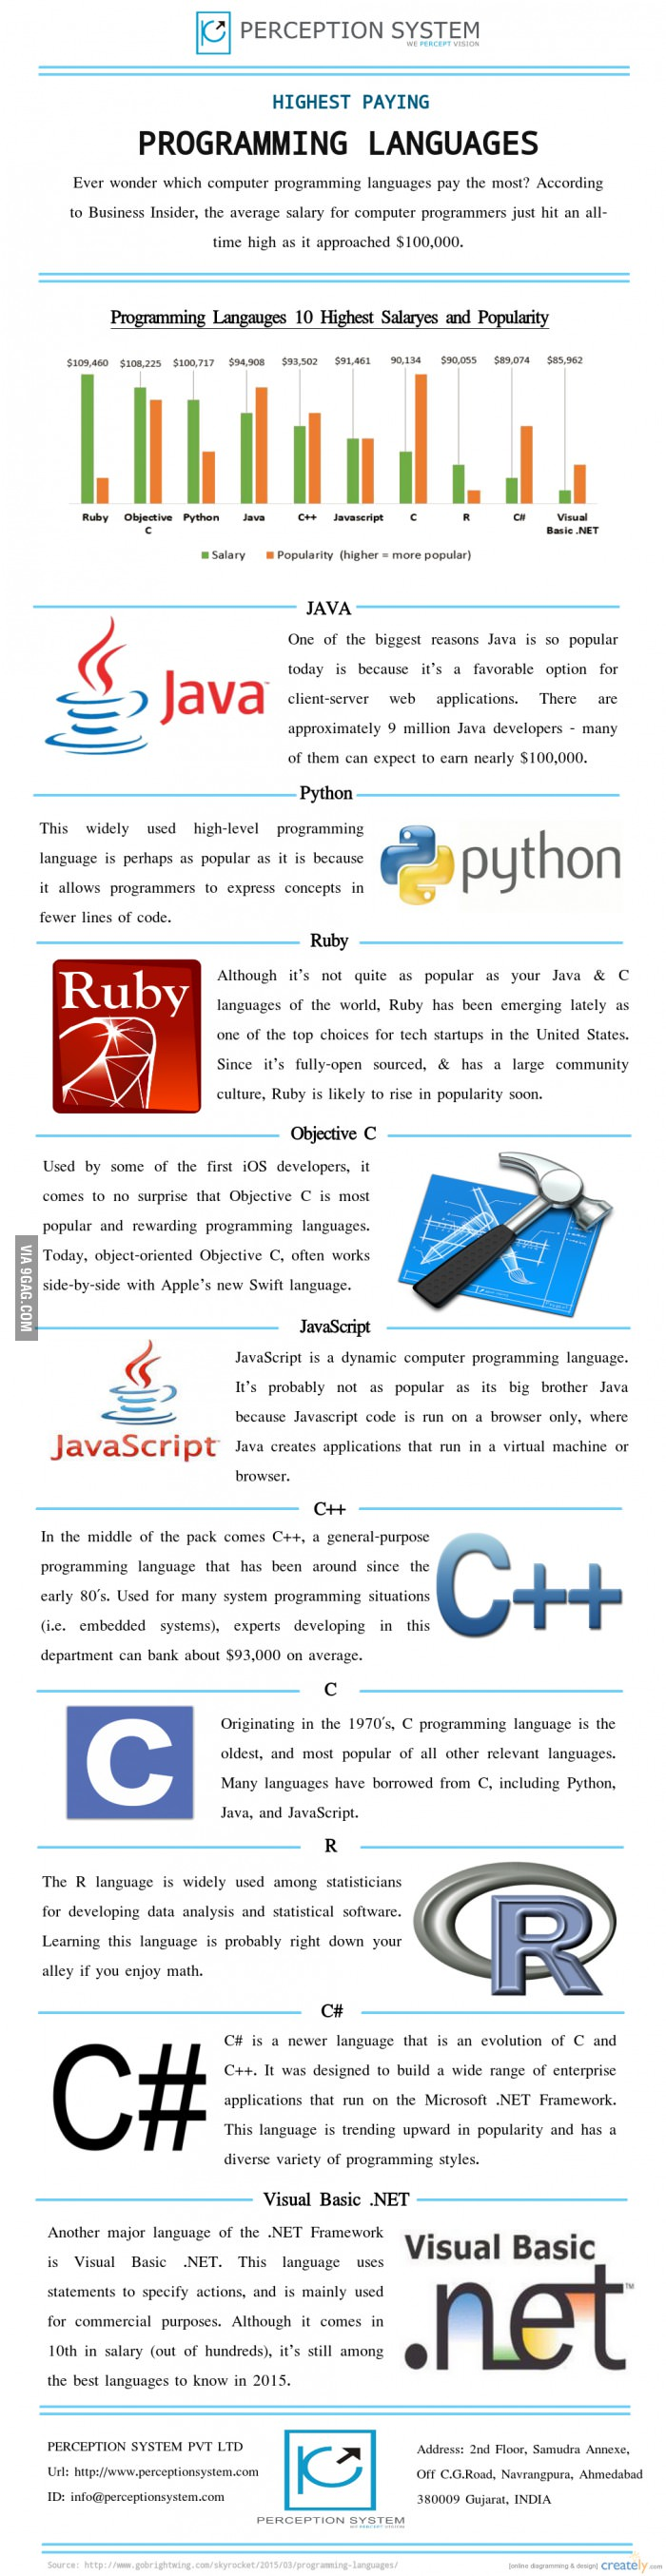 highest paying programming languages in 2015